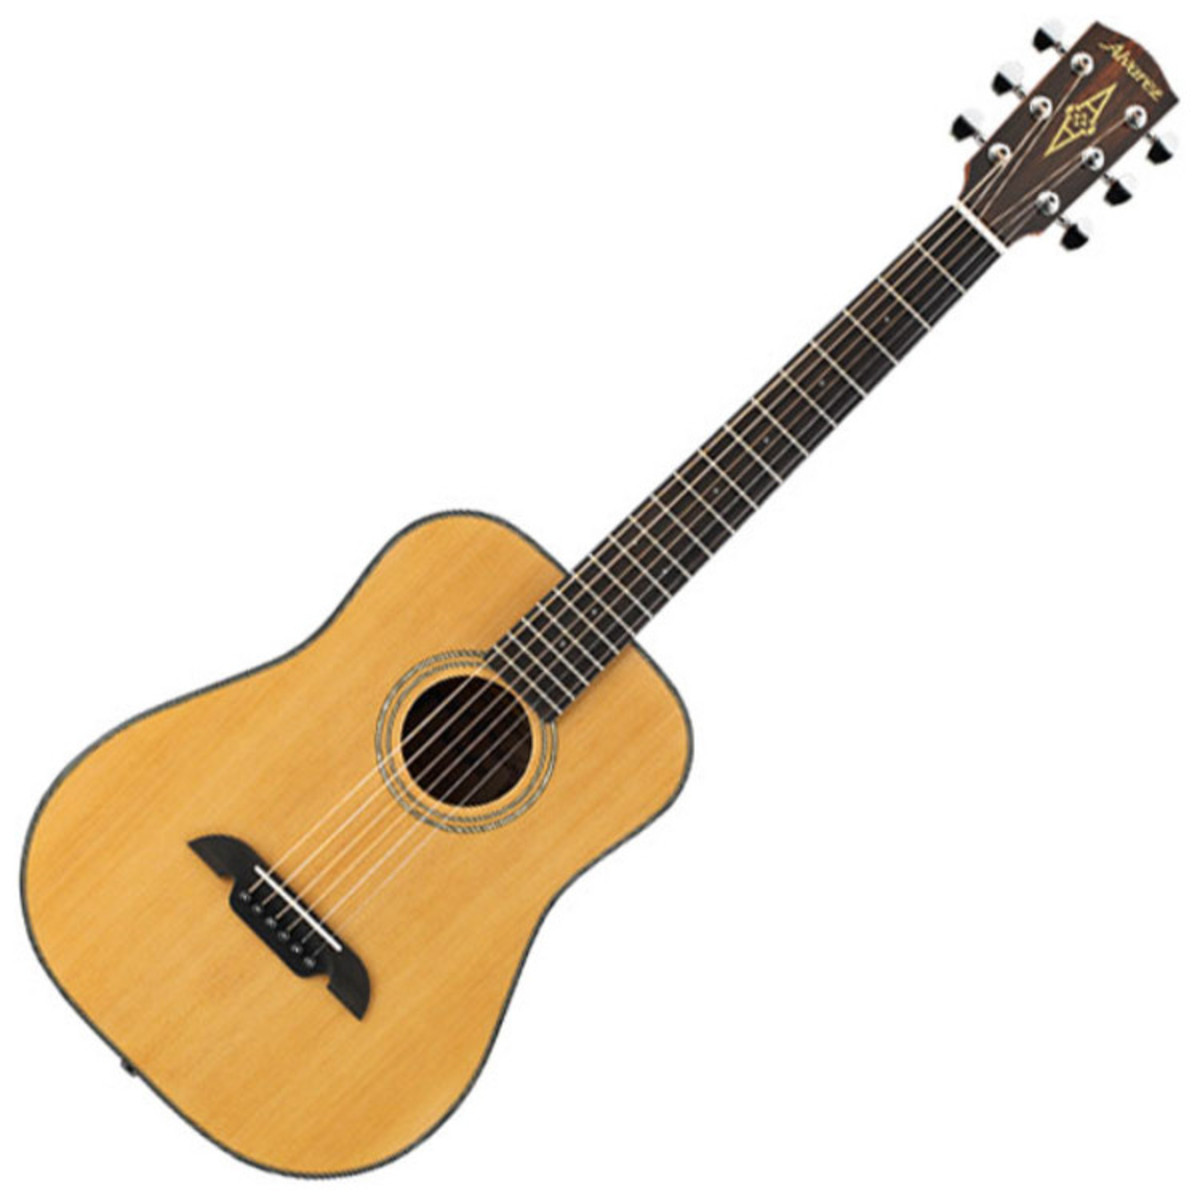 disc alvarez rt16 travel acoustic guitar natural with gigbag at gear4music. Black Bedroom Furniture Sets. Home Design Ideas